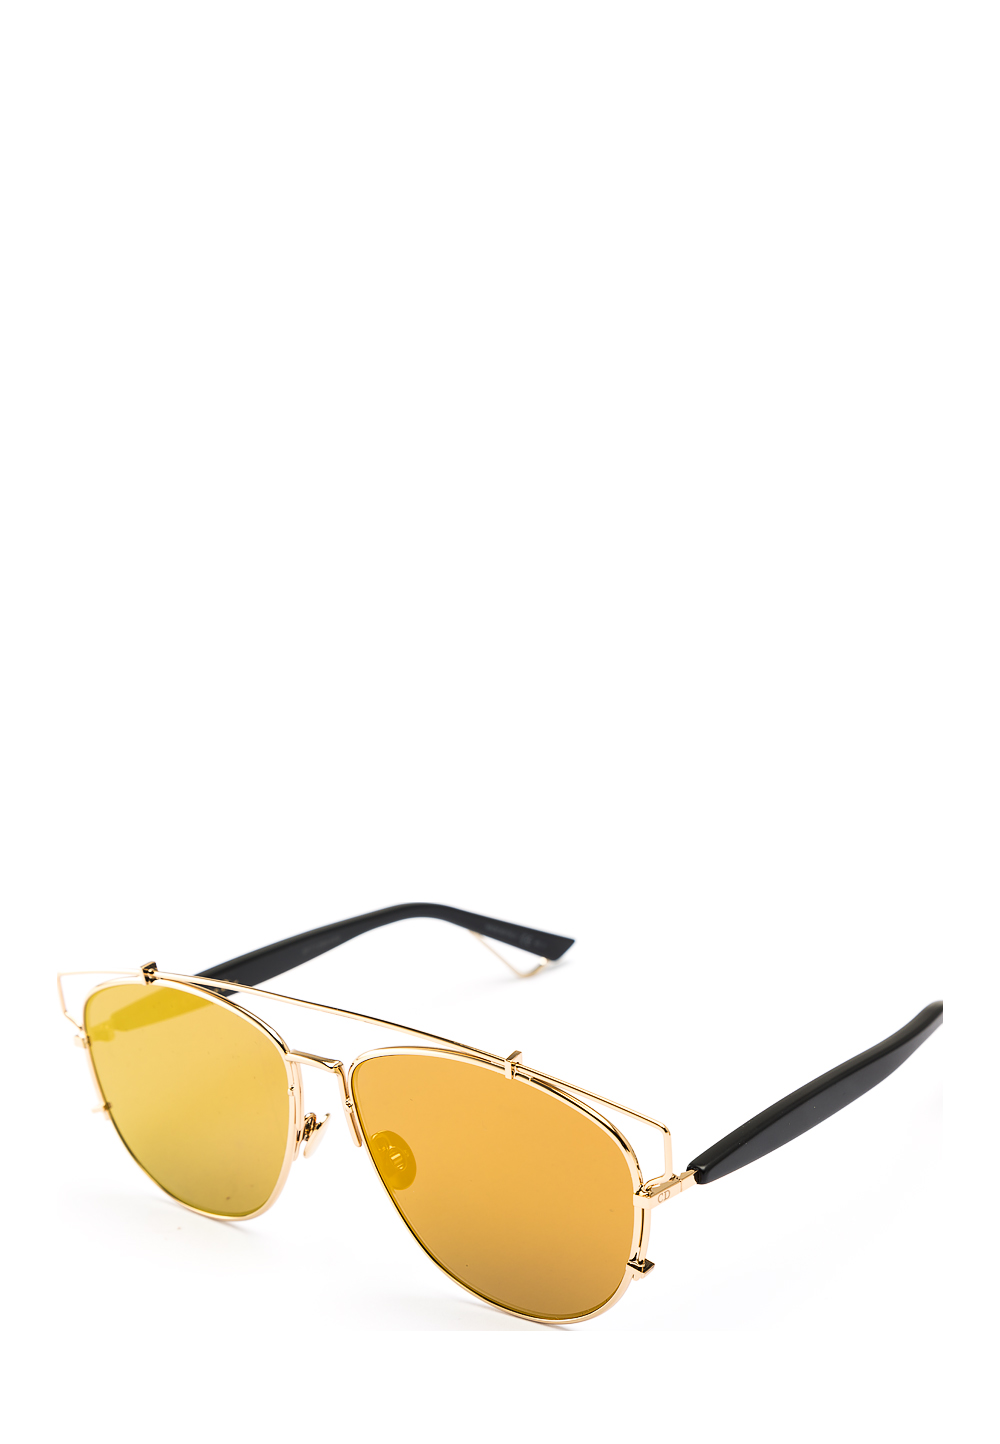 Sonnenbrille technologic, UV 400, golden